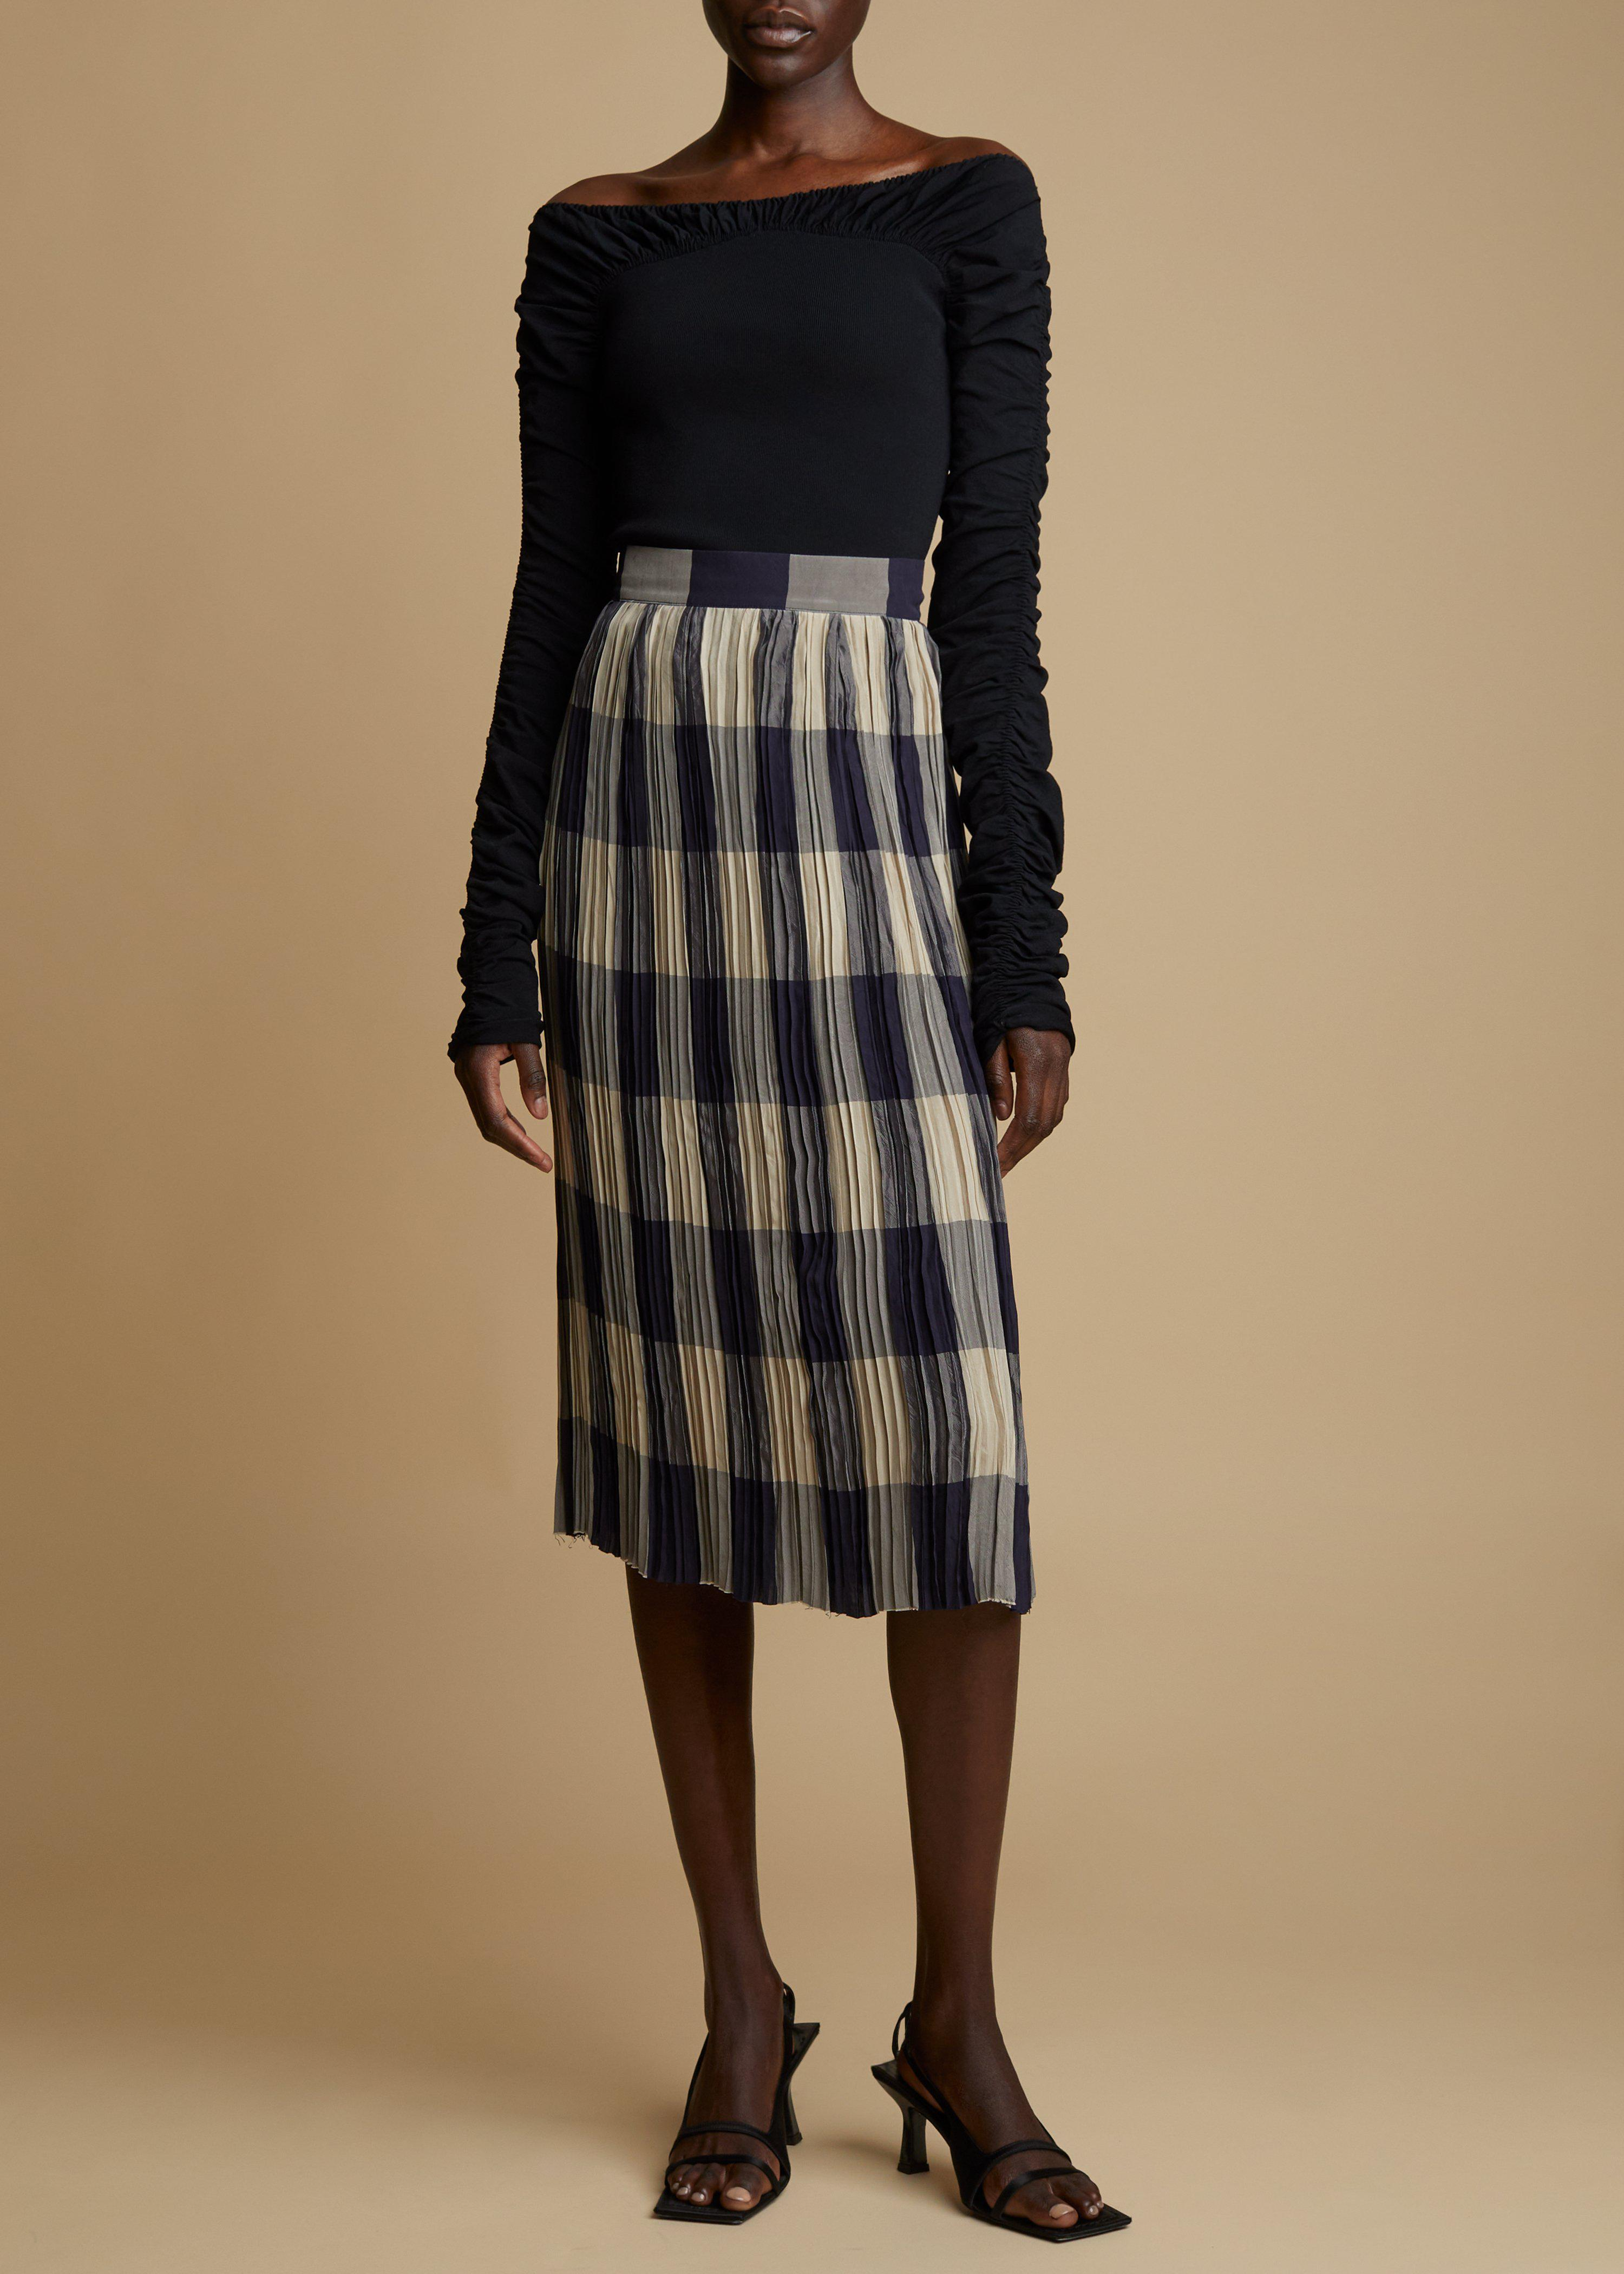 The Sylvia Skirt in Navy and Sand Check